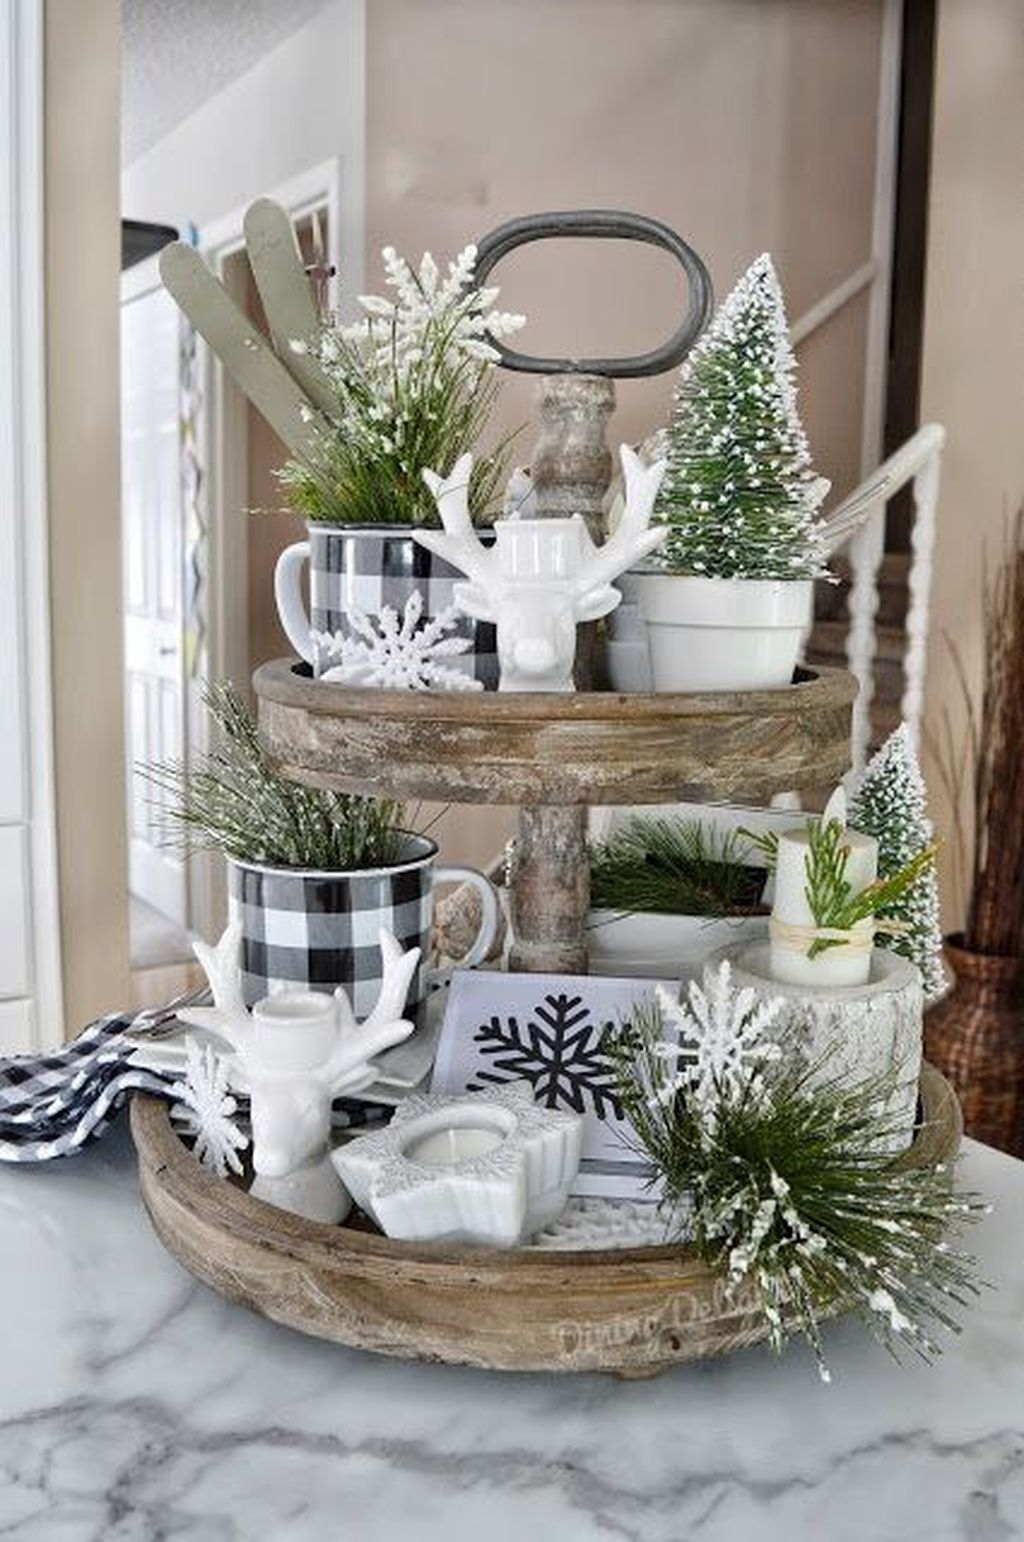 Inspiring Winter Kitchen Decor Ideas You Can Try 10